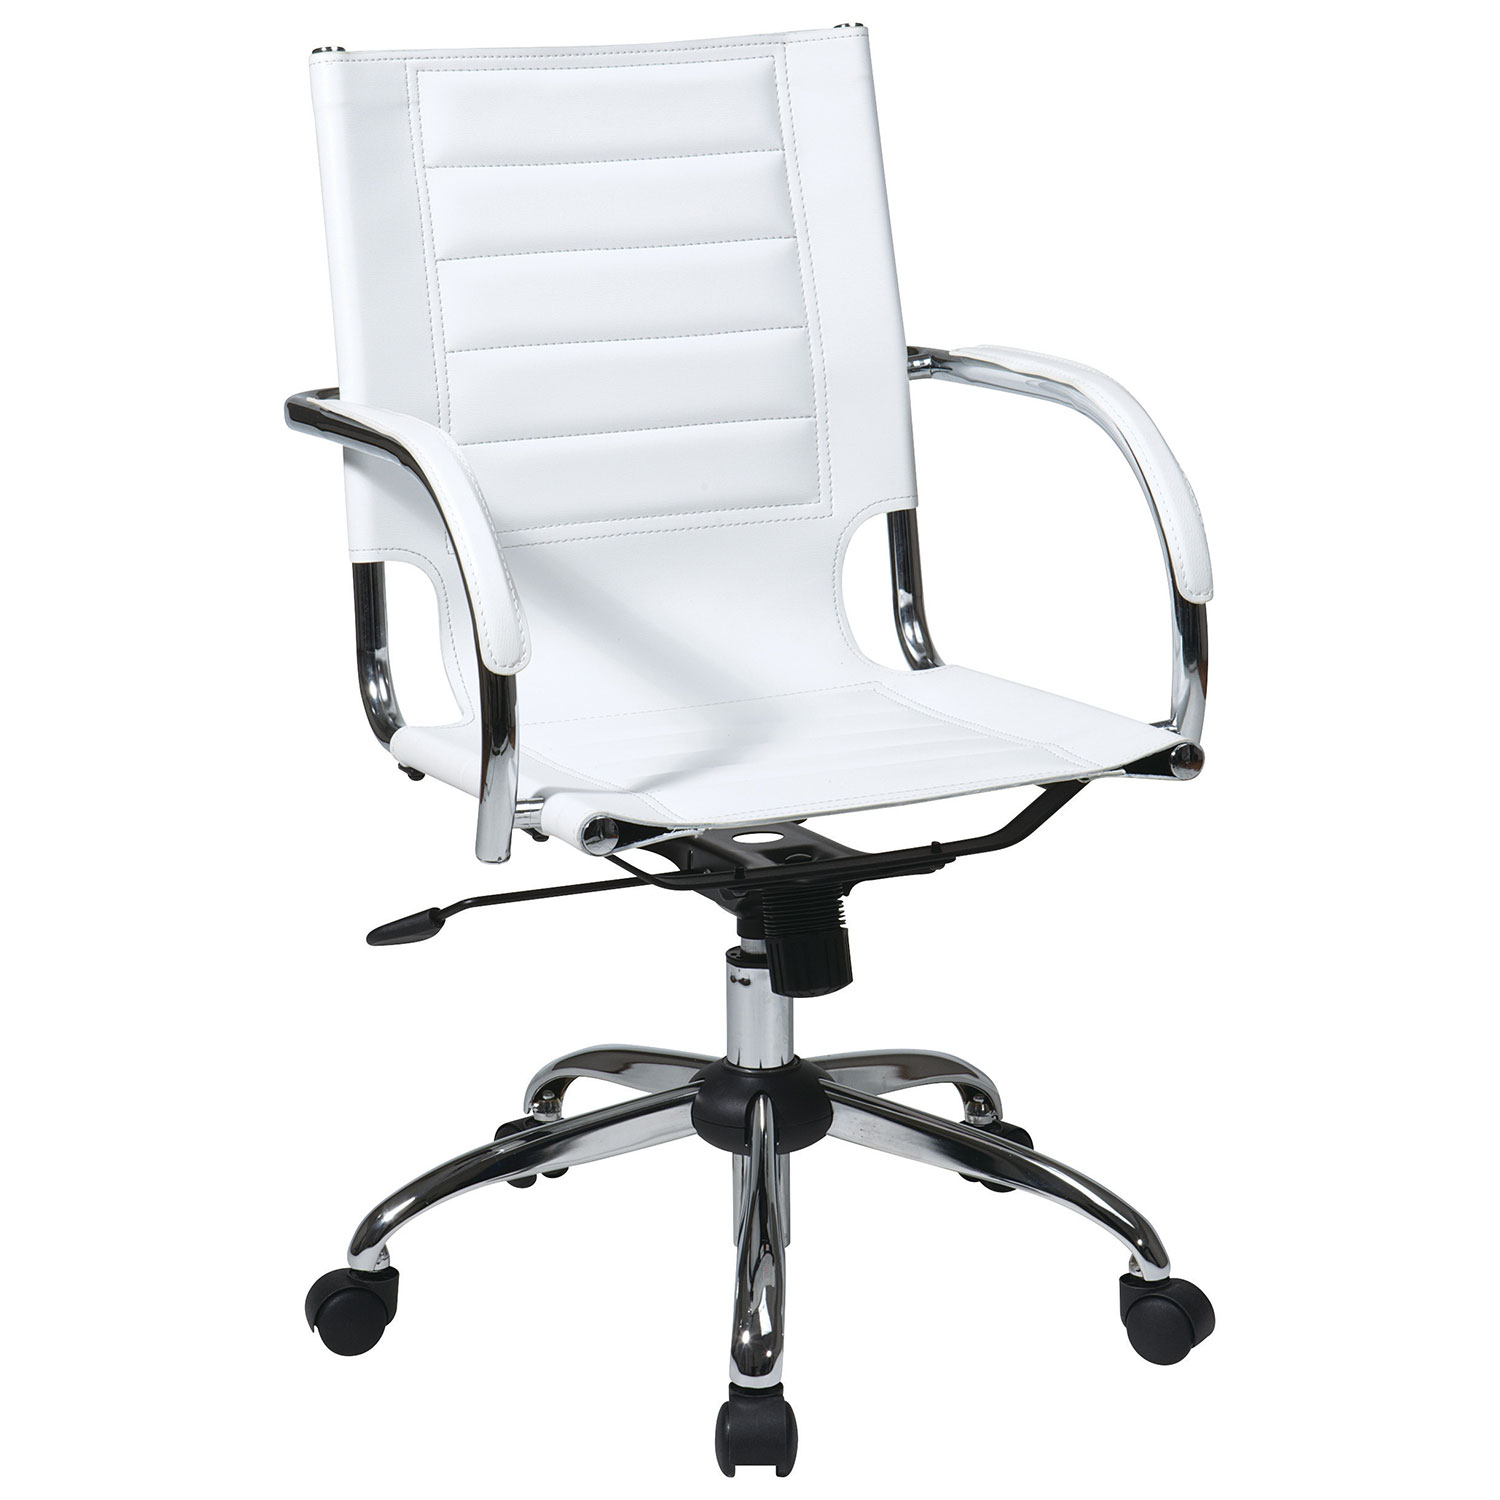 Avenue Six Trinidad PVC fice Chair White fice Chairs